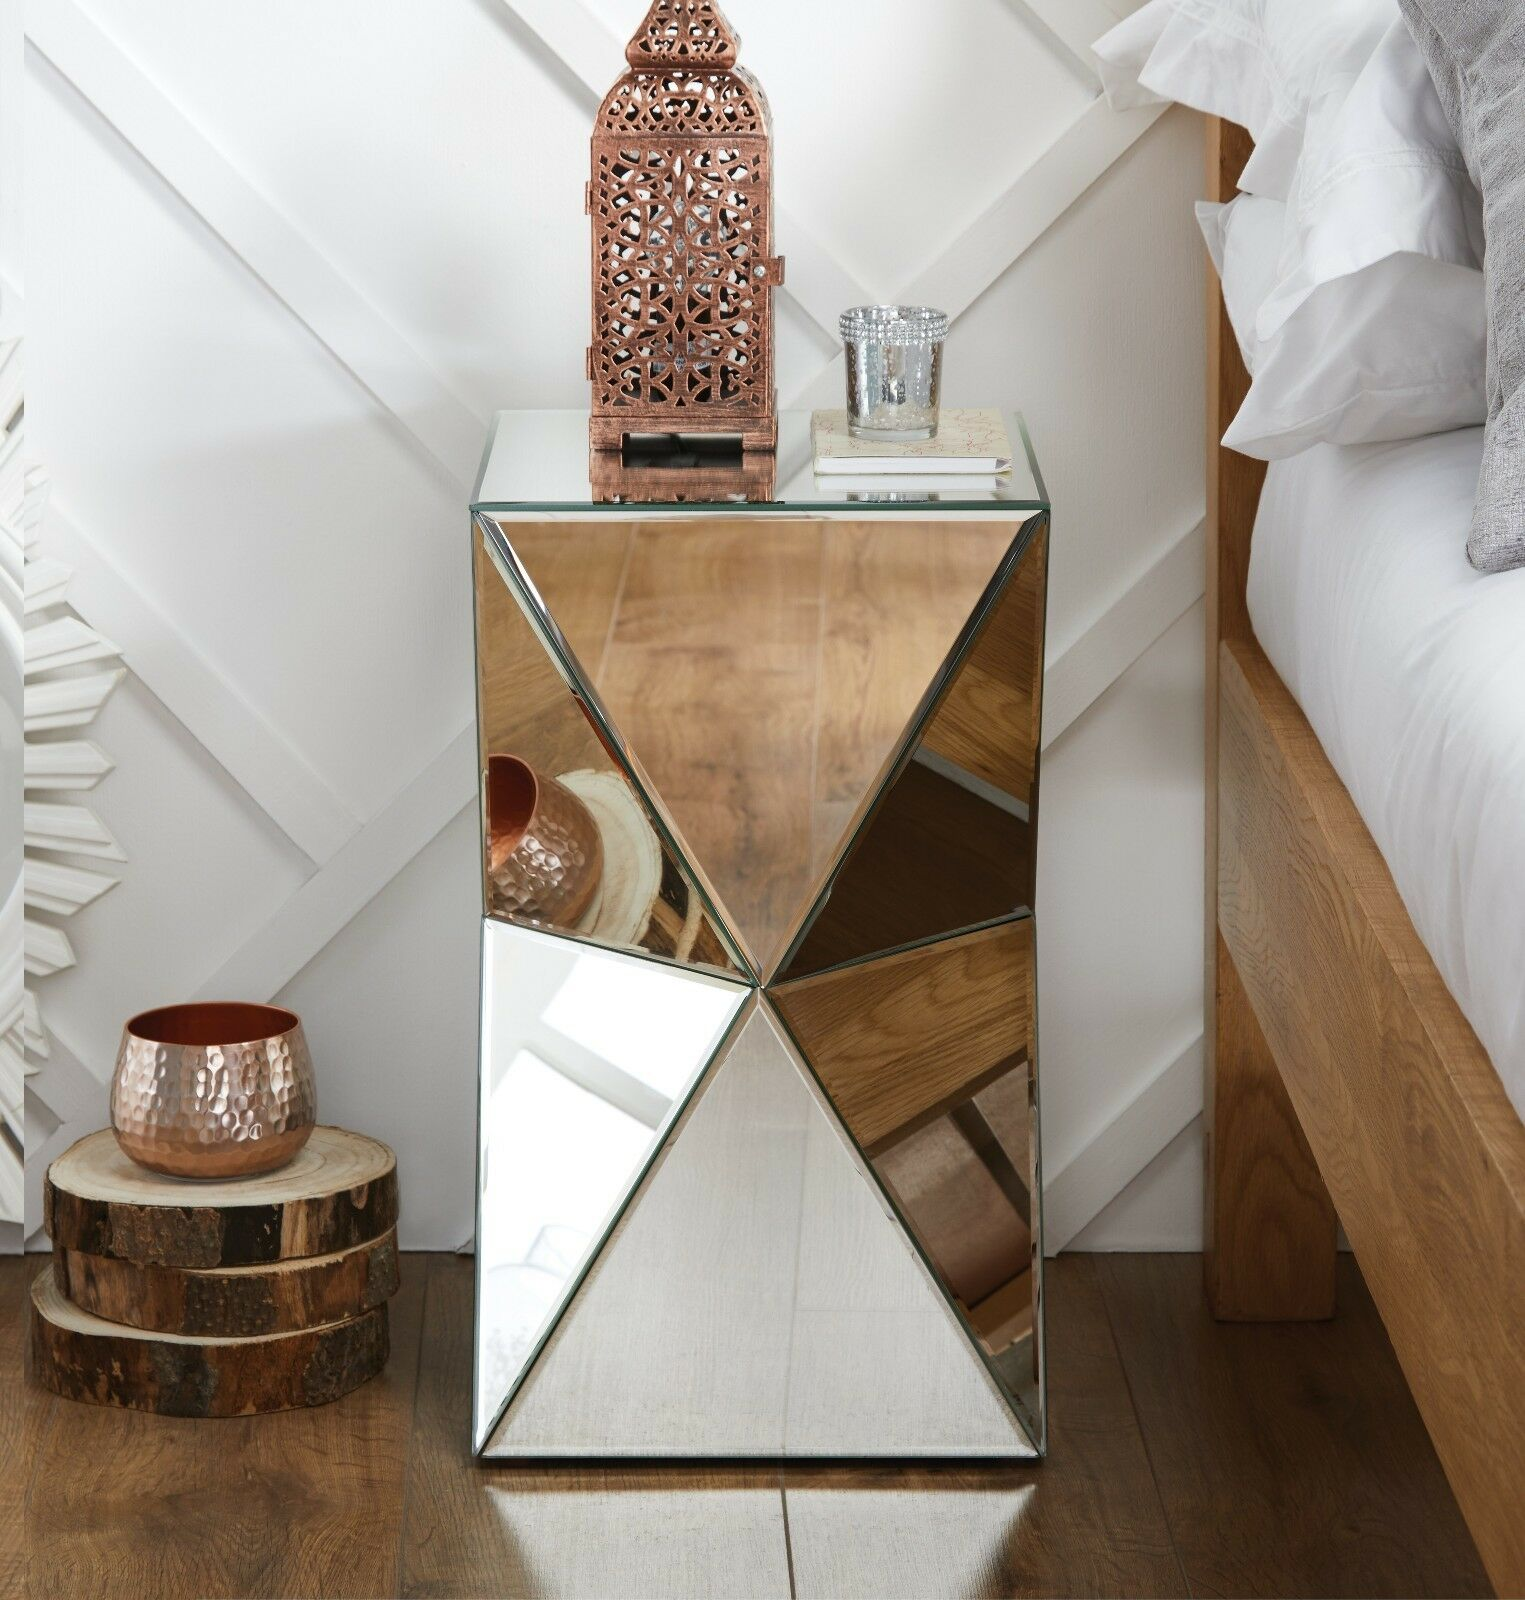 Details about DIAMOND Mirrored Mirror Bedside Bed Side Coffee Table Stand  Living Room Bedroom